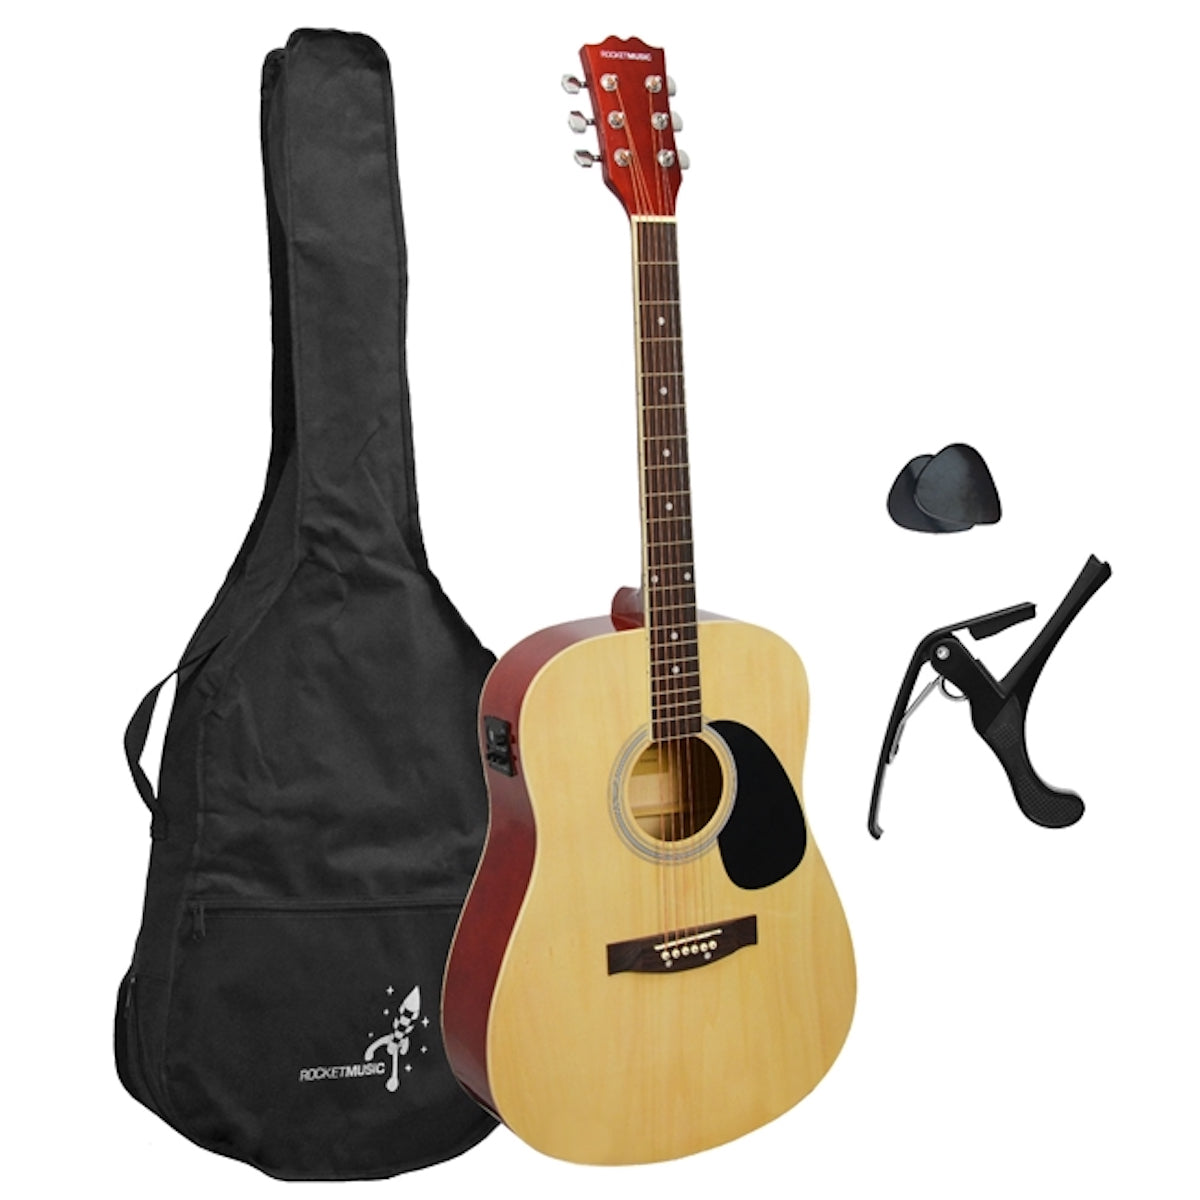 Rocket Dreadnought Electro-Acoustic Guitar Pack - Full size